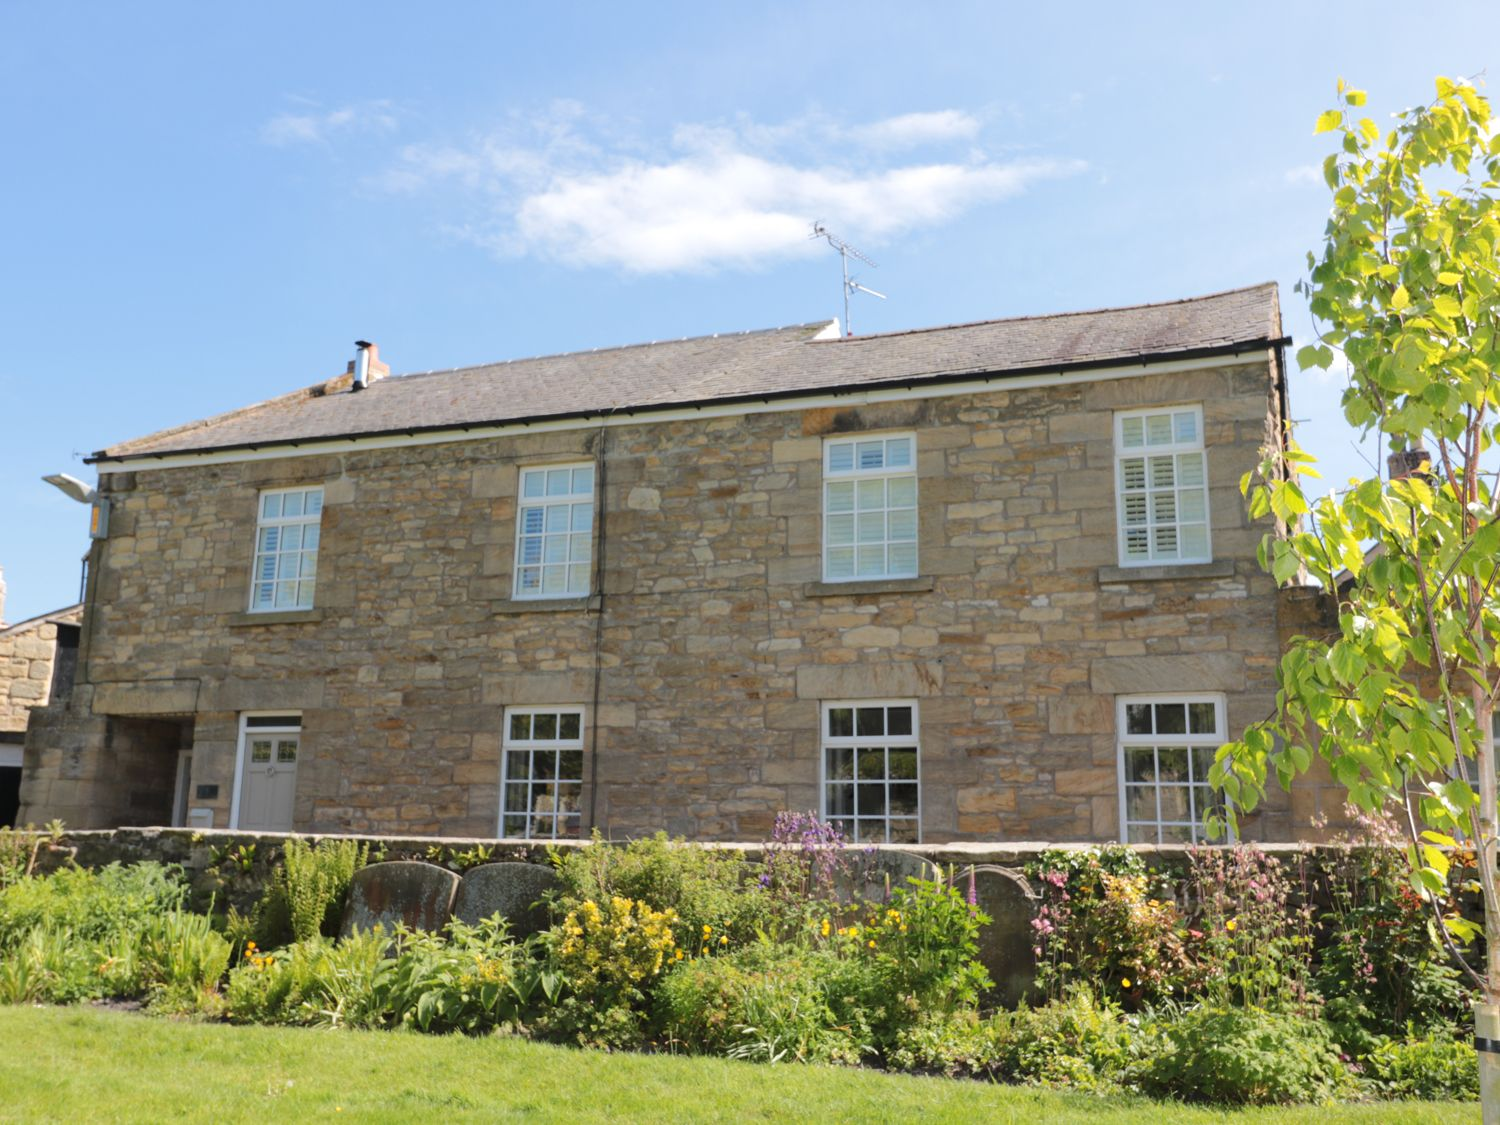 Northumberland Holiday Cottages: St. Lawrence Rest, Warkworth | Sykes Cottages